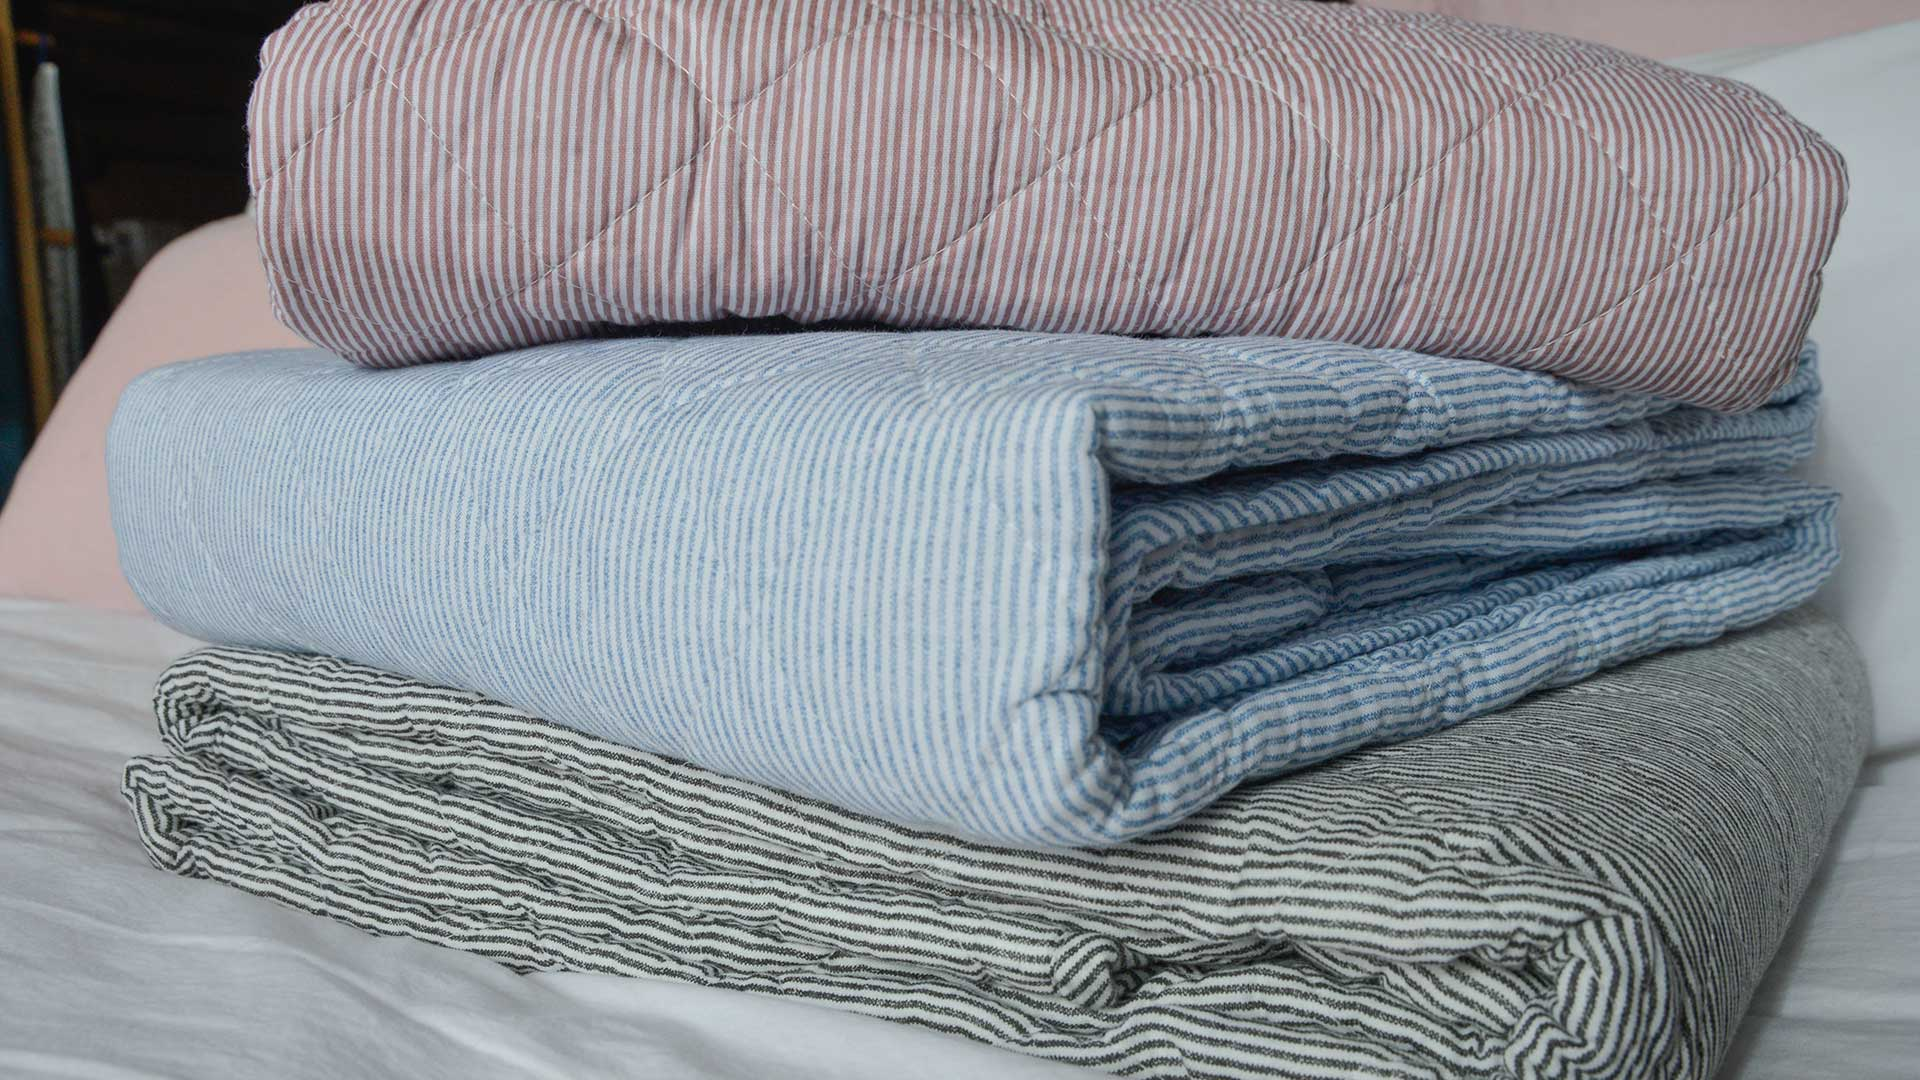 0d437f9c0 Striped Cotton Quilted Throws